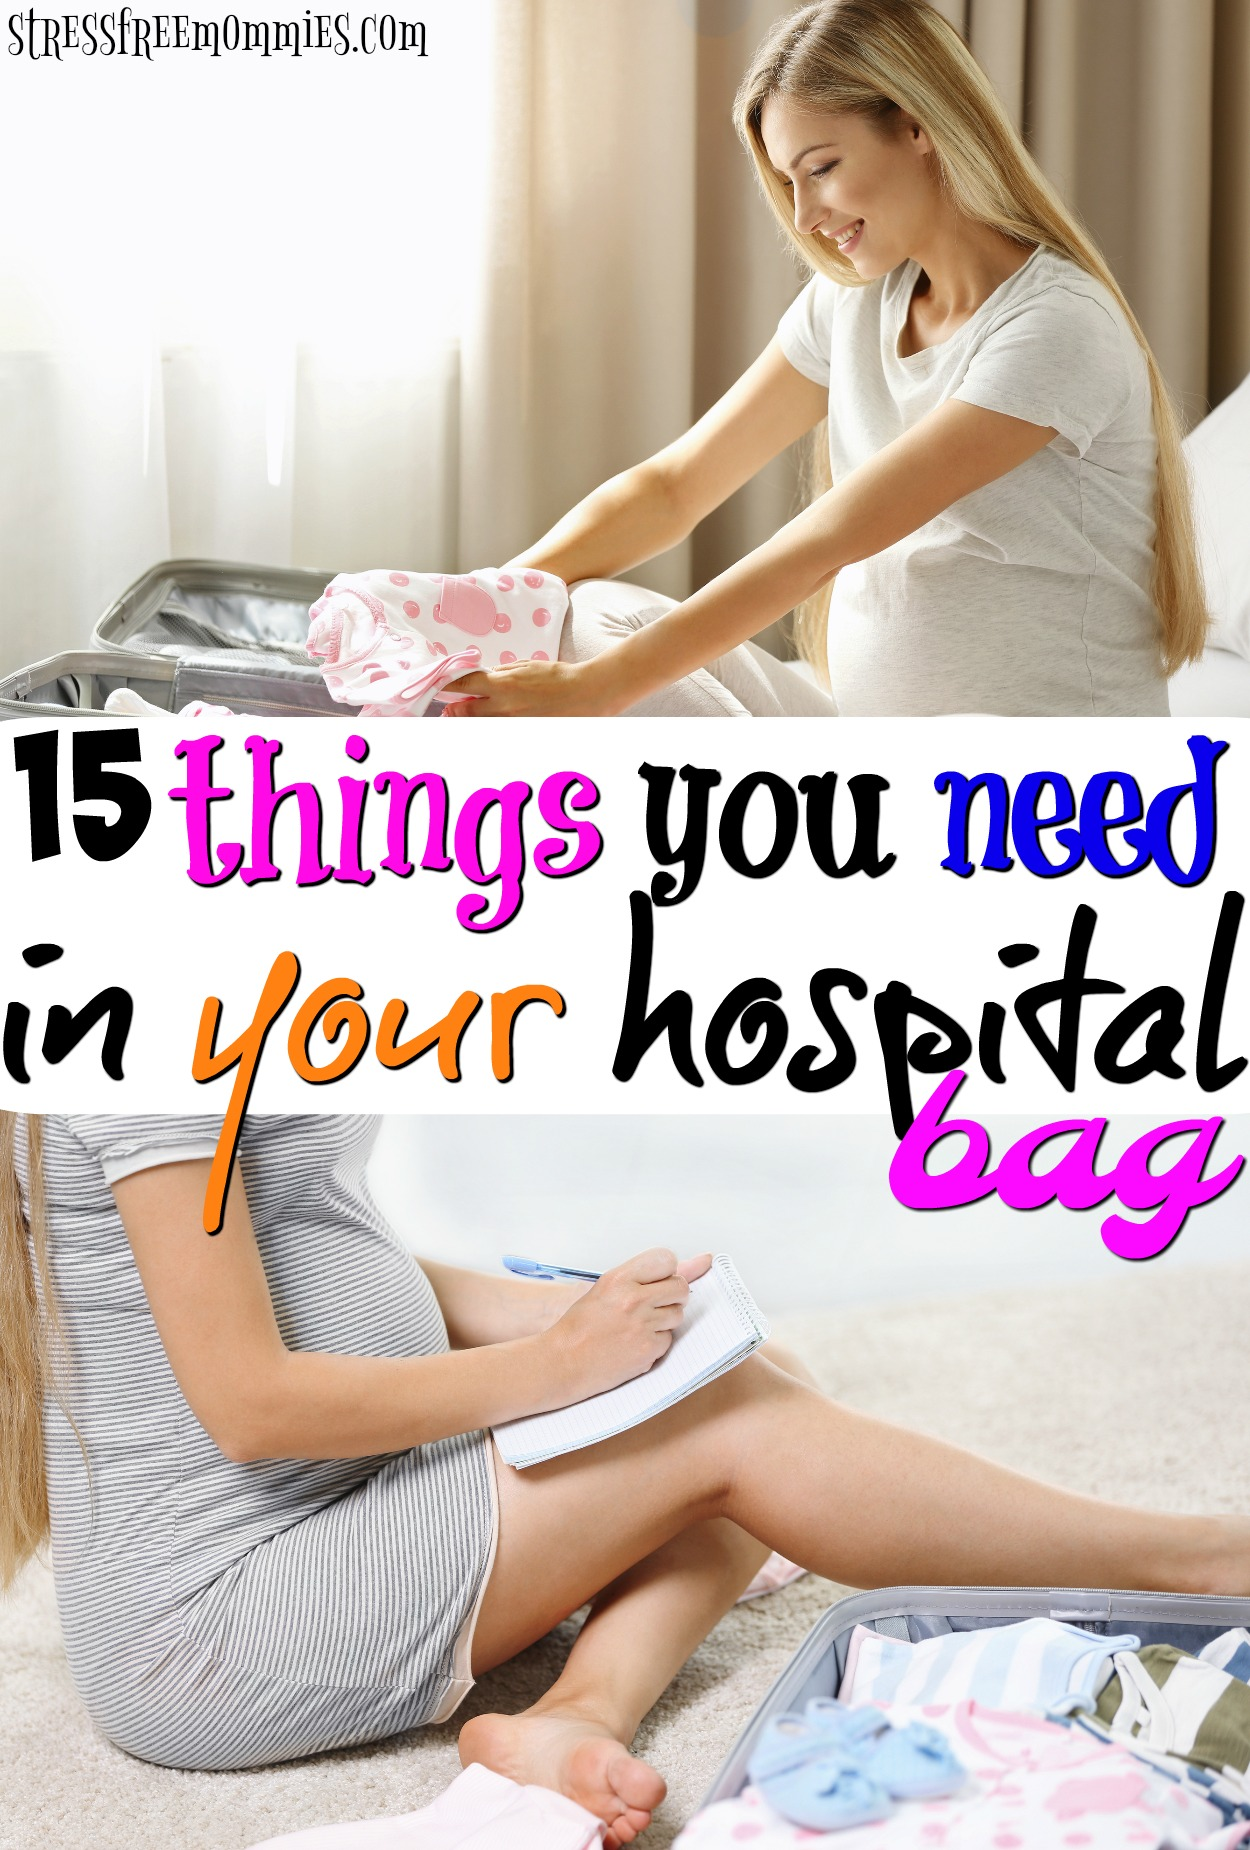 The simple hospital bag check list. Find out what to pack in your hospital bag with no over-packing, no fuss, just essentials. Hospital bag check list for mom.